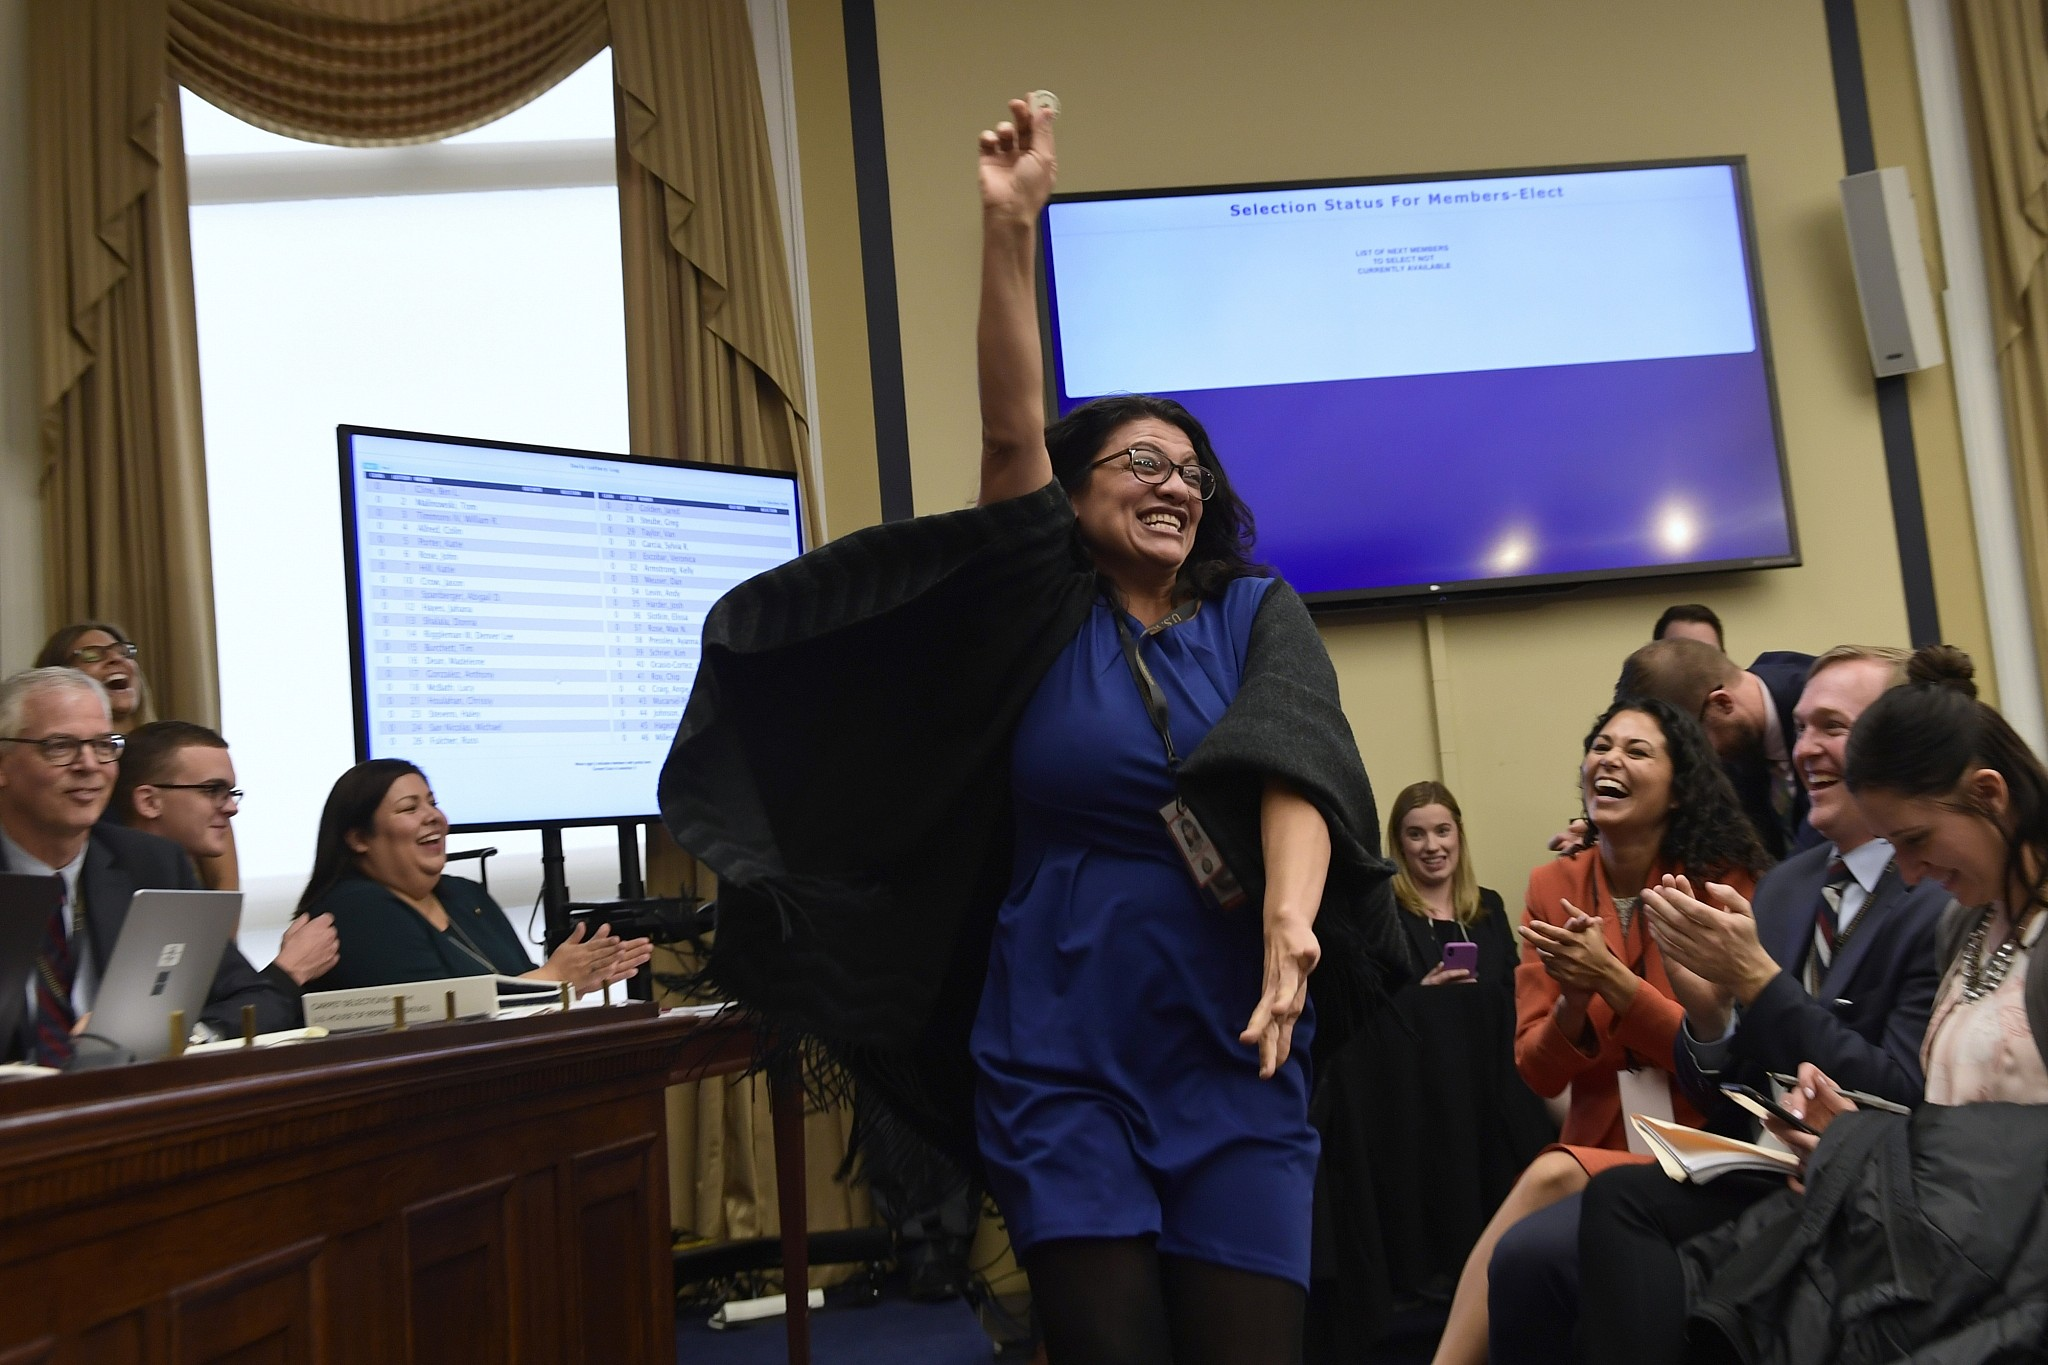 Rashida Tlaib on Trump: We're going to impeach that motherf-ker